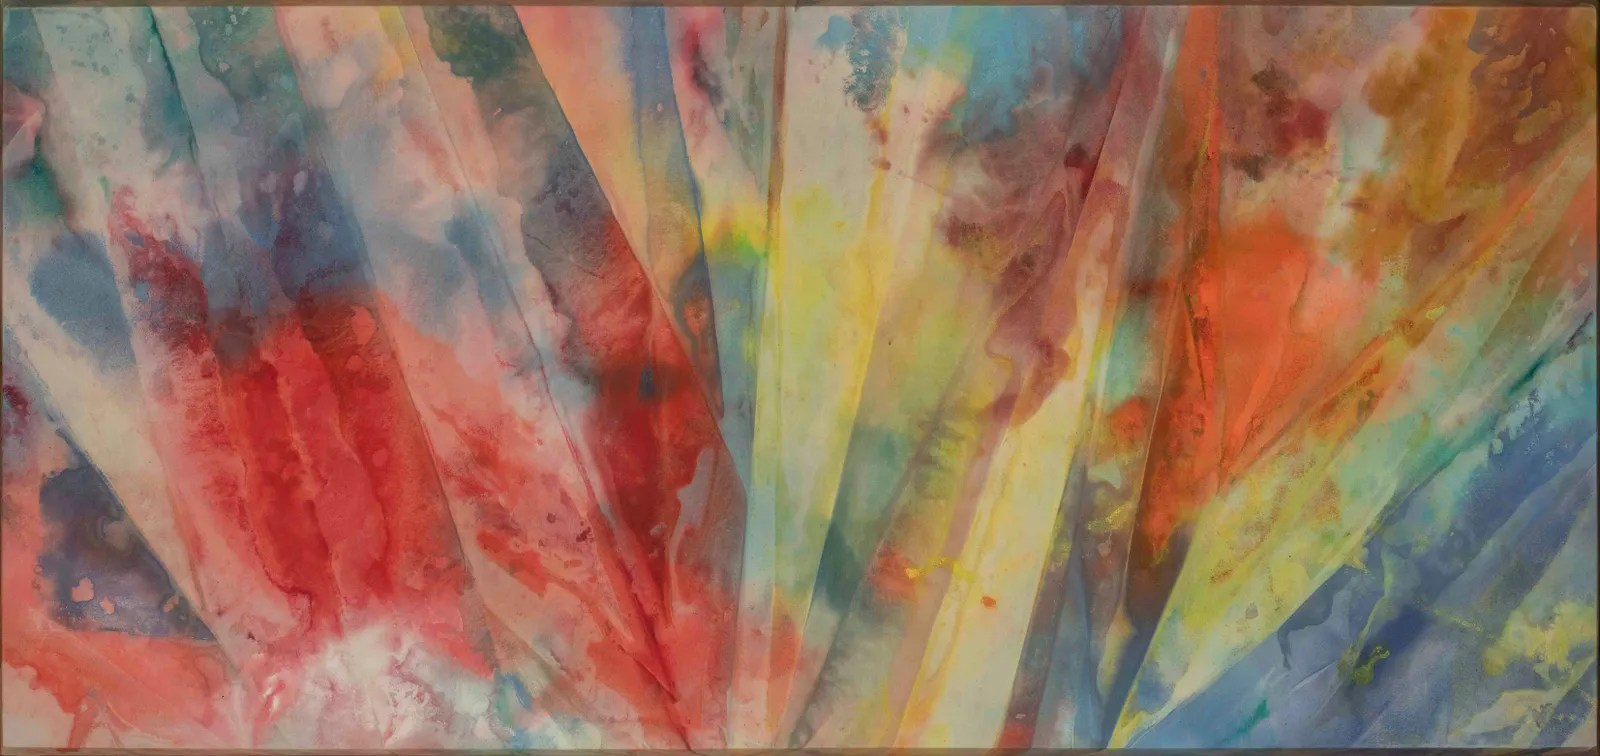 Sam Gilliam's Ray painting.